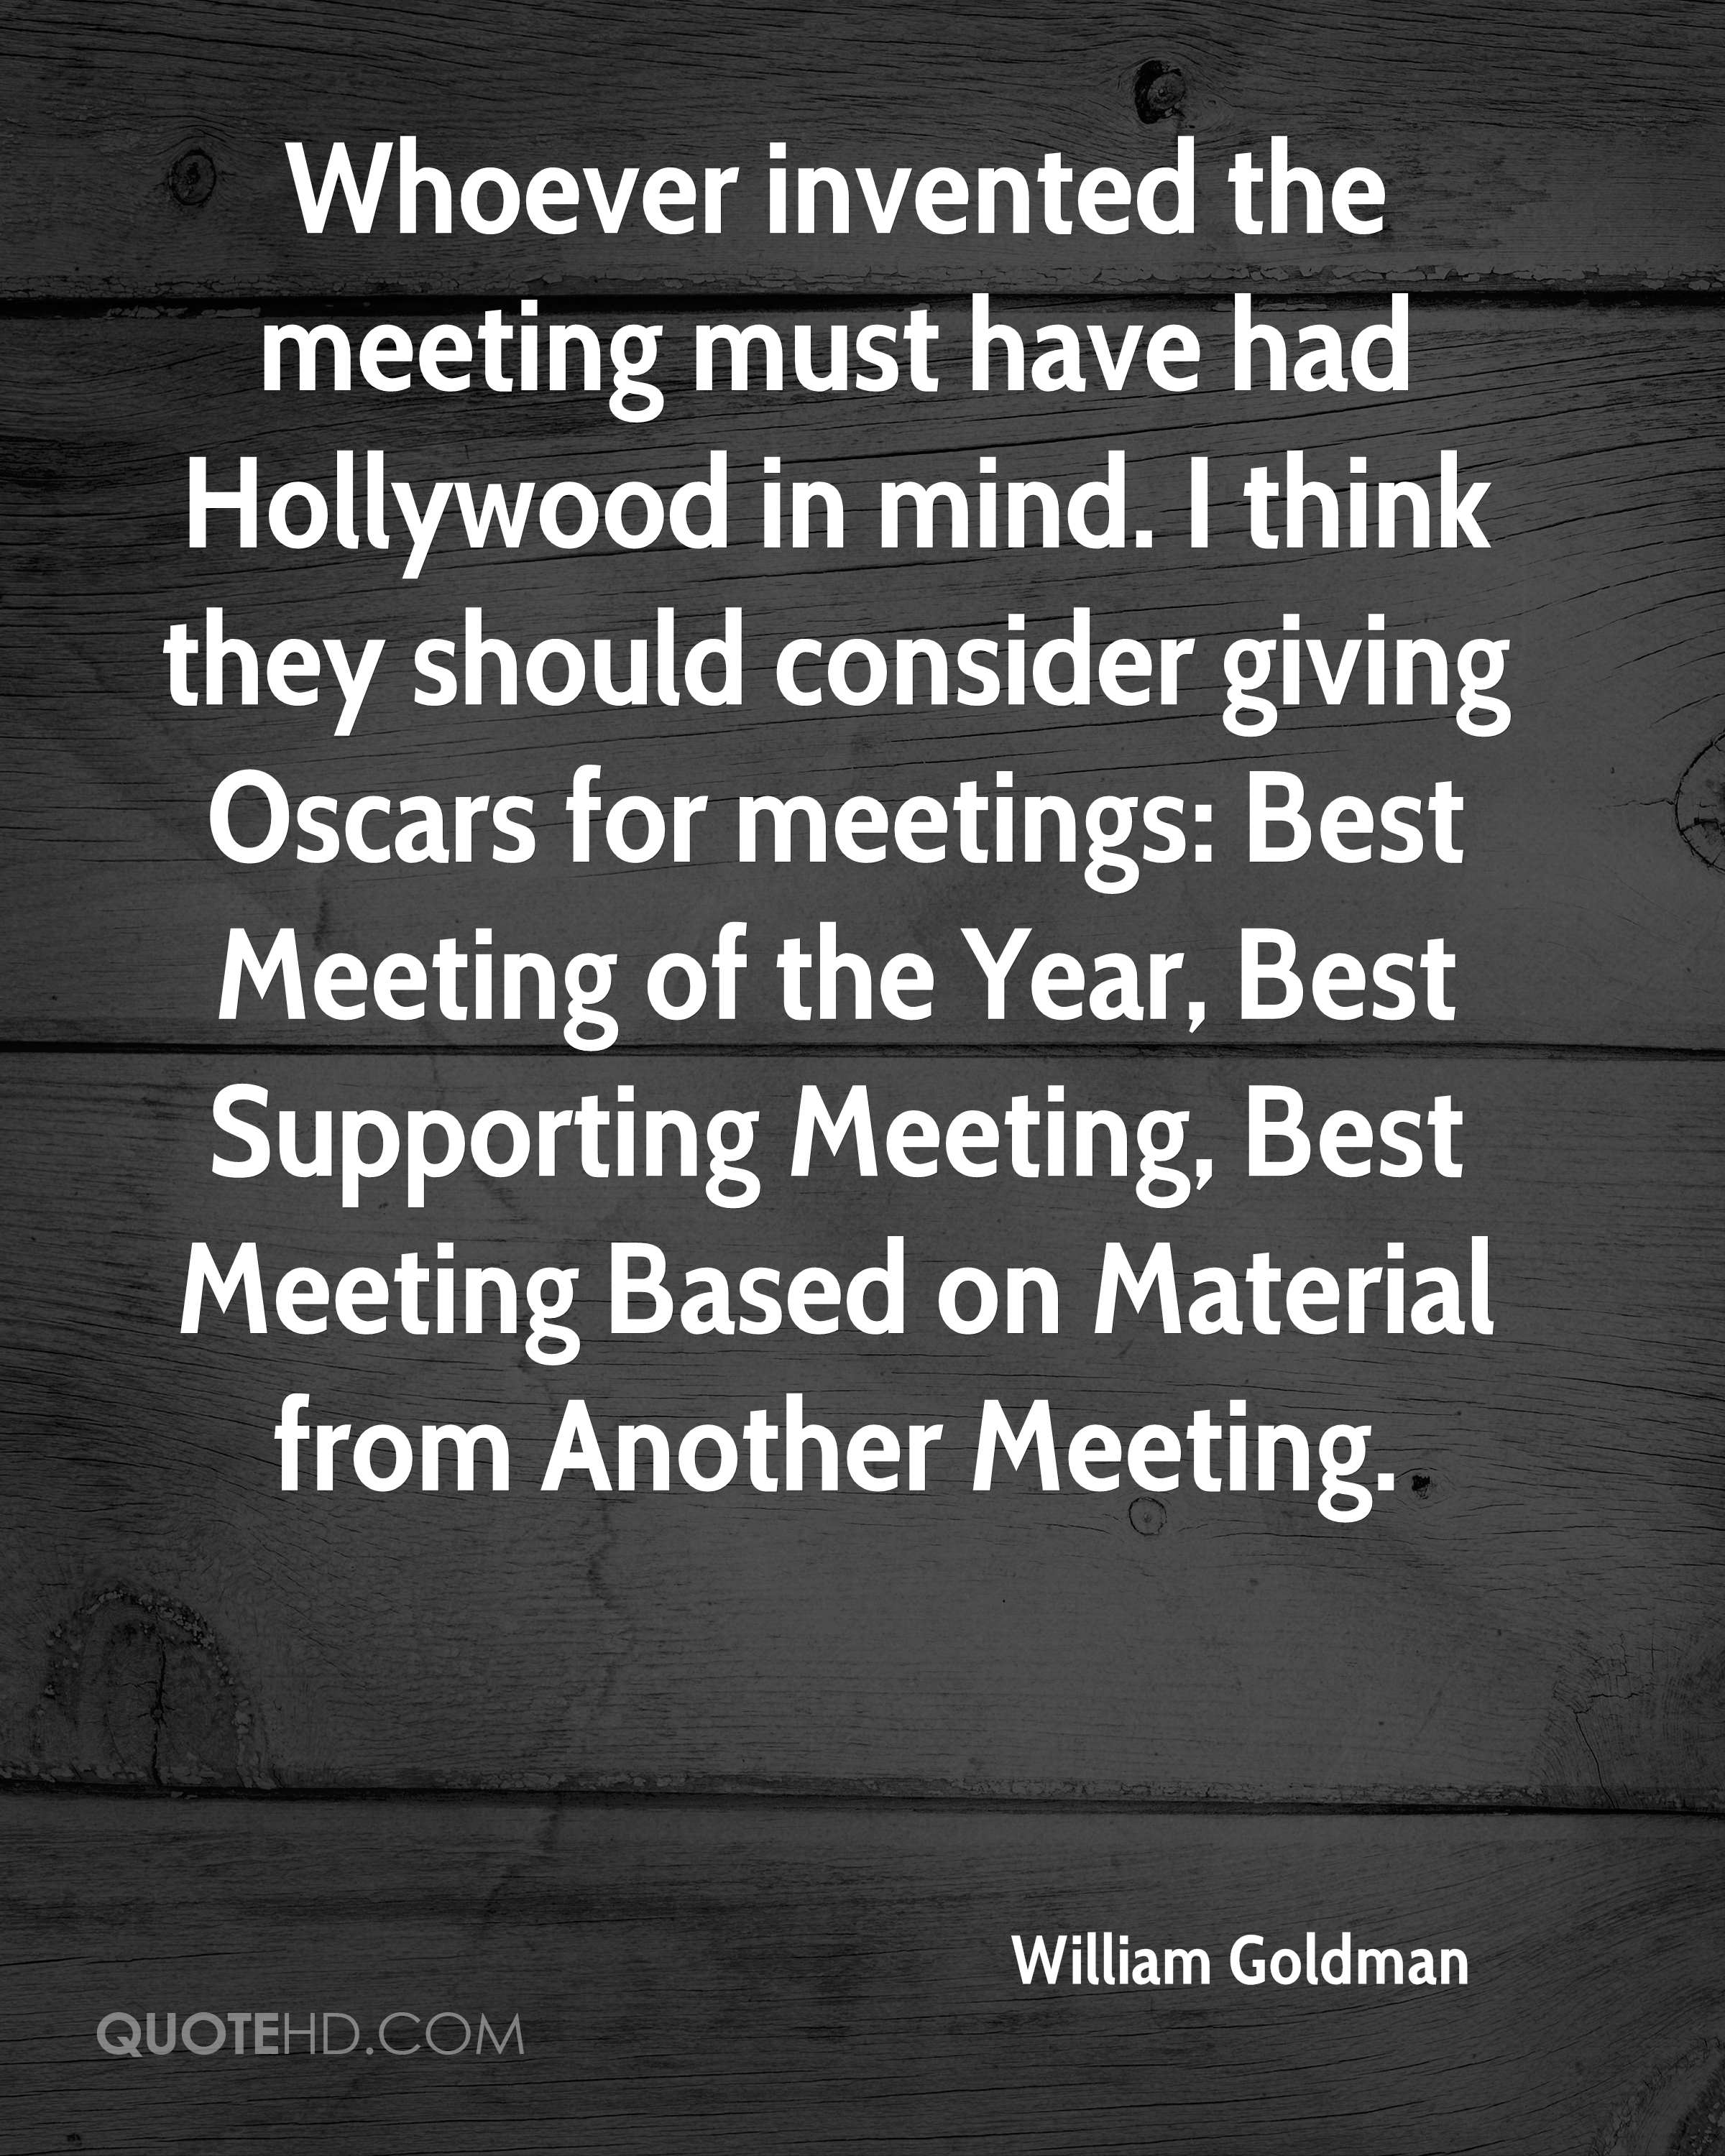 Whoever invented the meeting must have had Hollywood in mind. I think they should consider giving Oscars for meetings: Best Meeting of the Year, Best Supporting Meeting, Best Meeting Based on Material from Another Meeting.